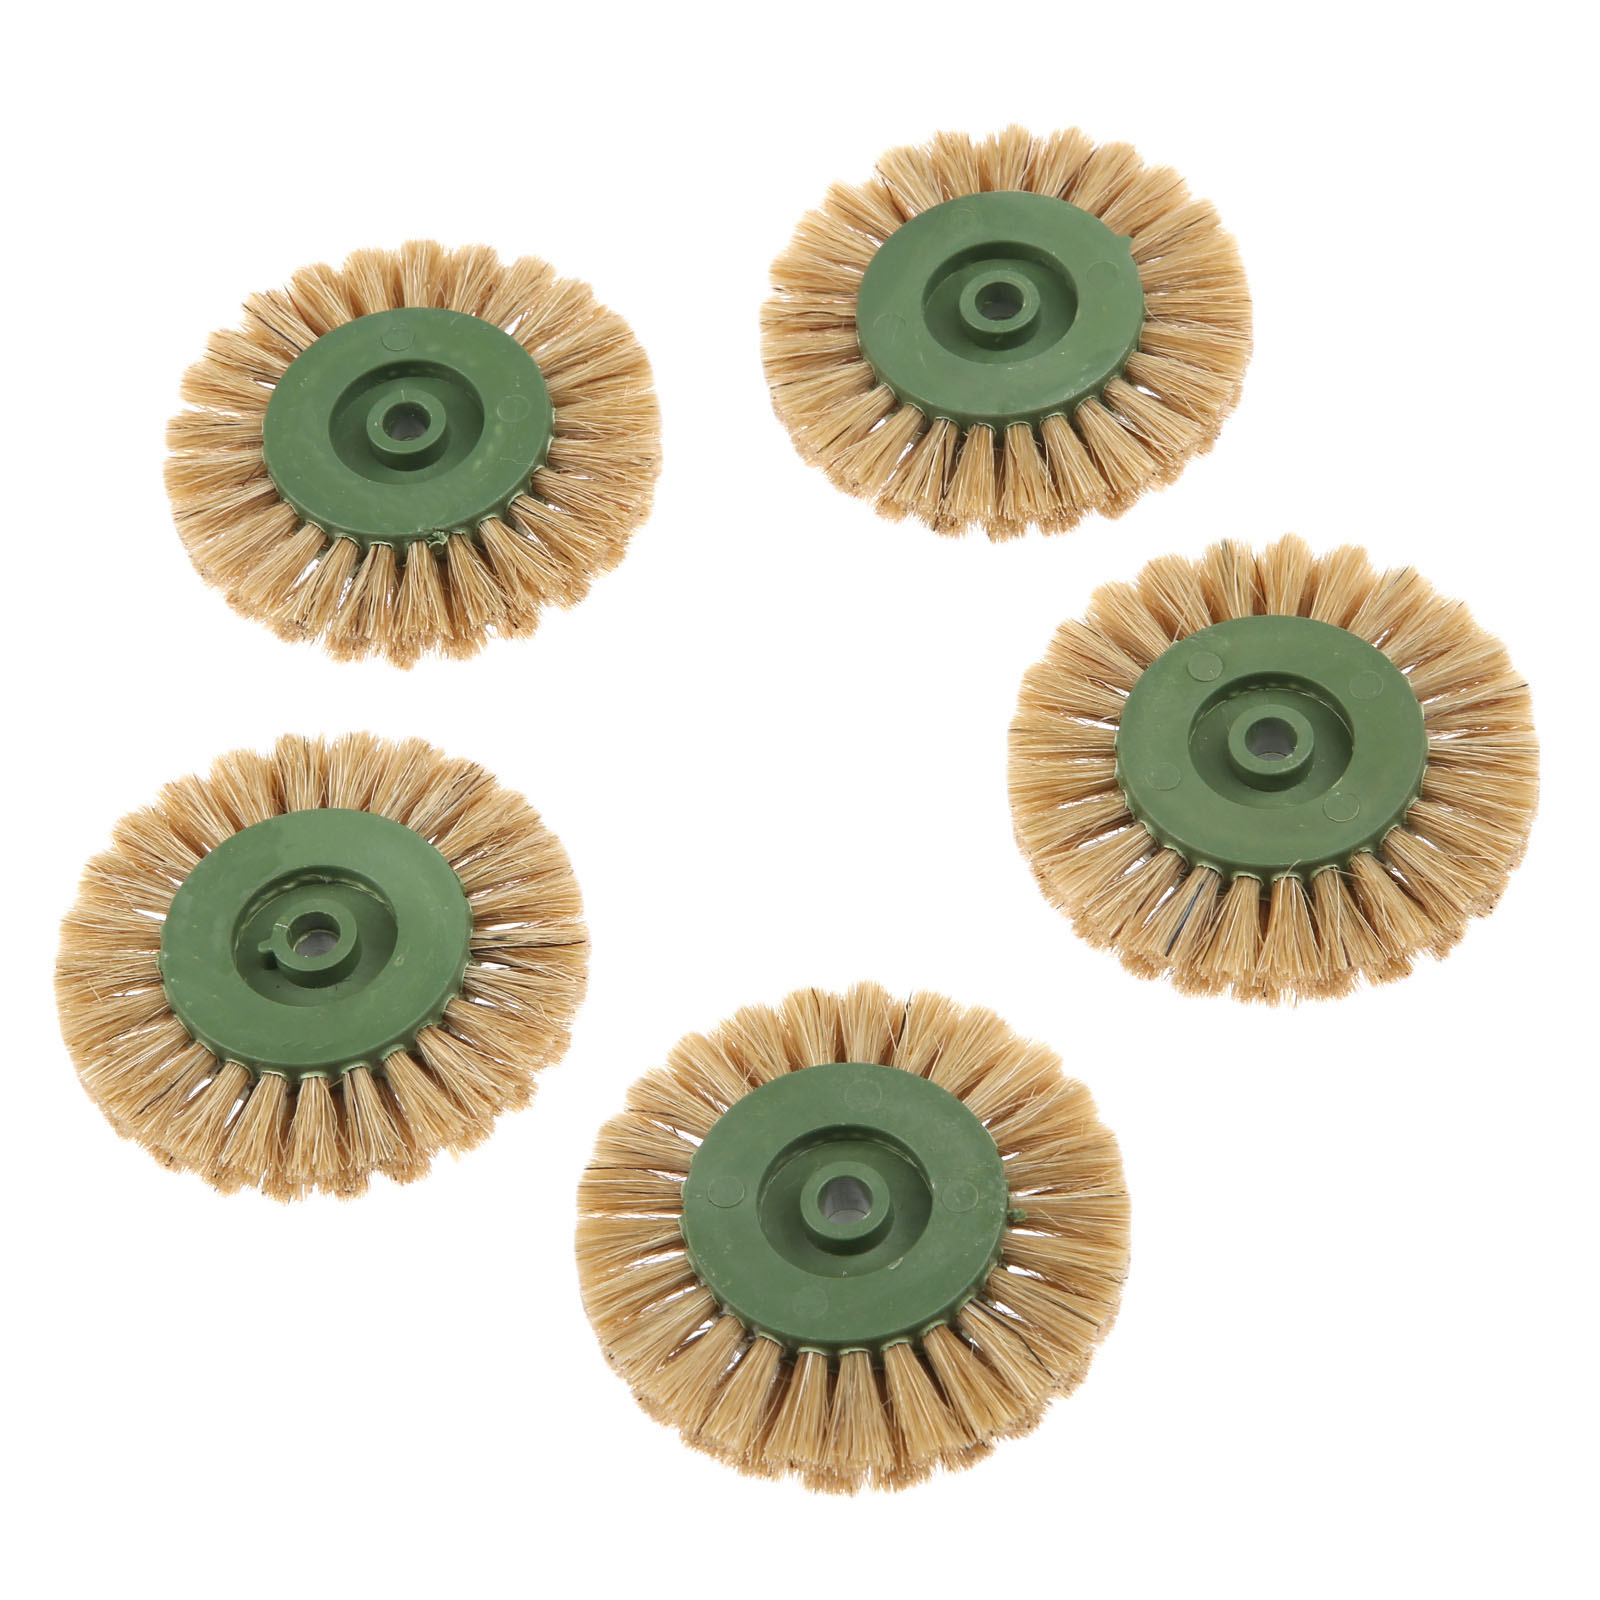 DRELD 5Pcs Dremel Accessories 70mm Grinding Brush Head Abrasive Wheel Yellow Buffing Polishing Wheels For Dremel Rotary Tool